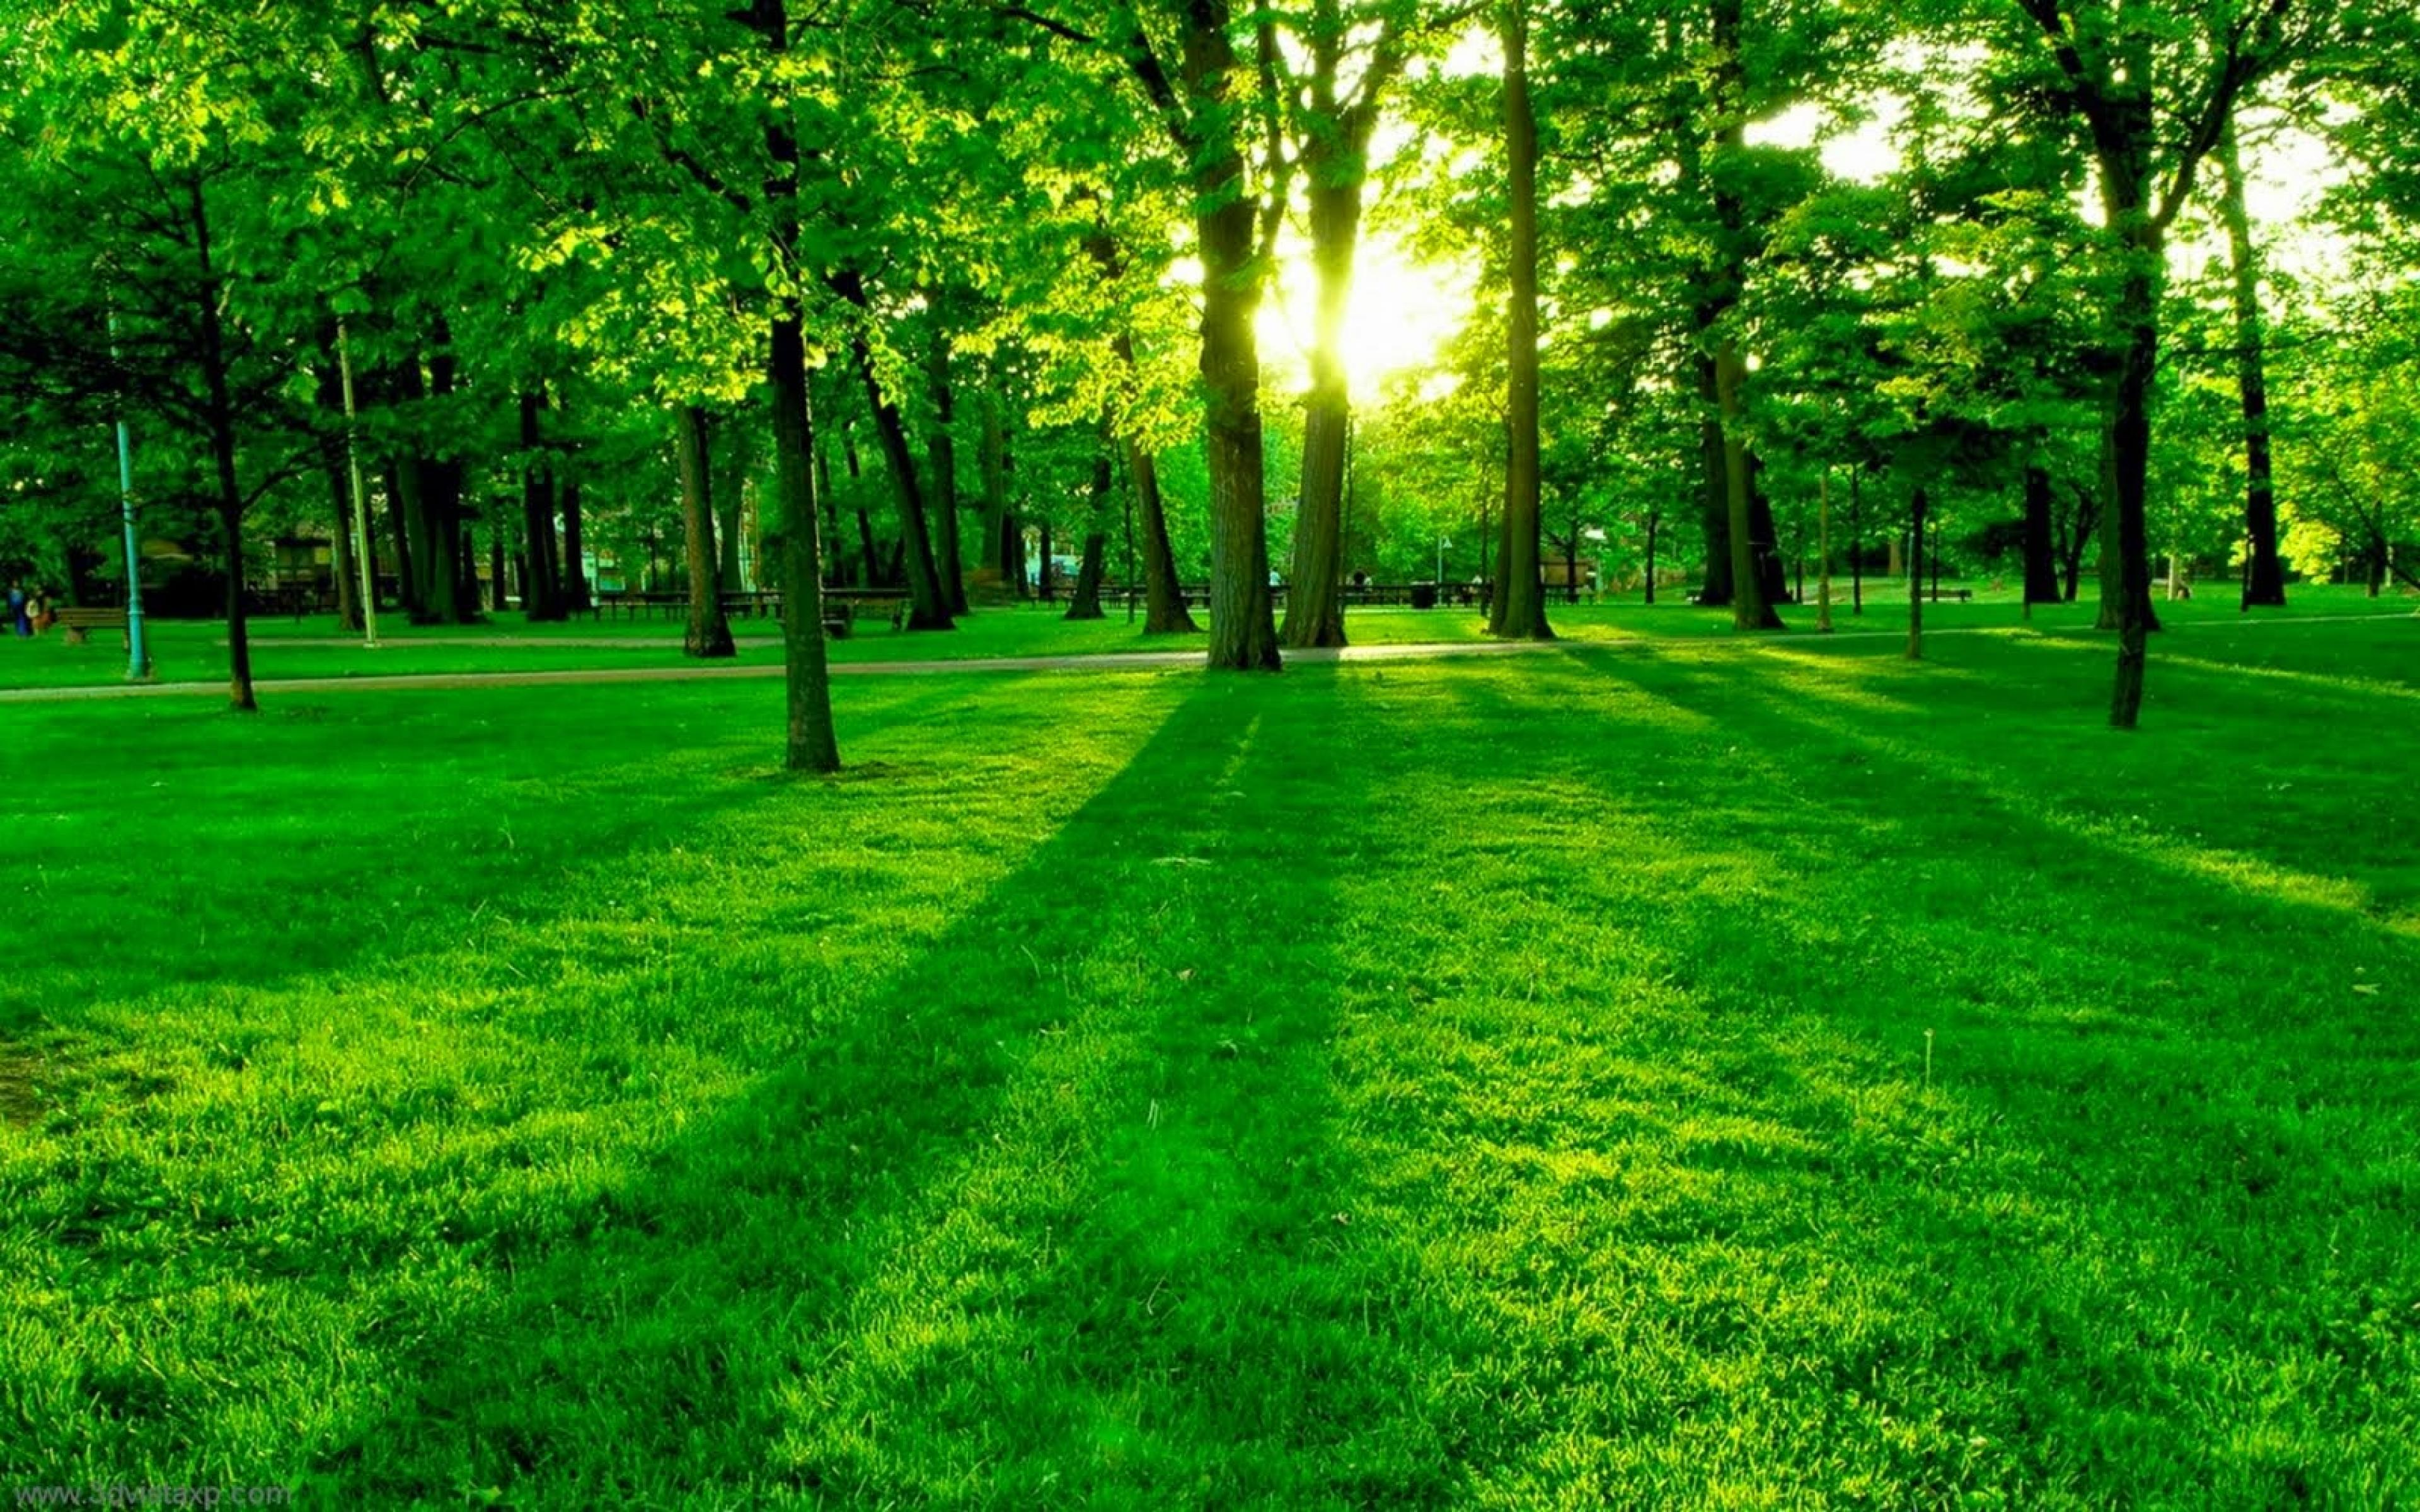 Green Forest Background wallpaper for desktop